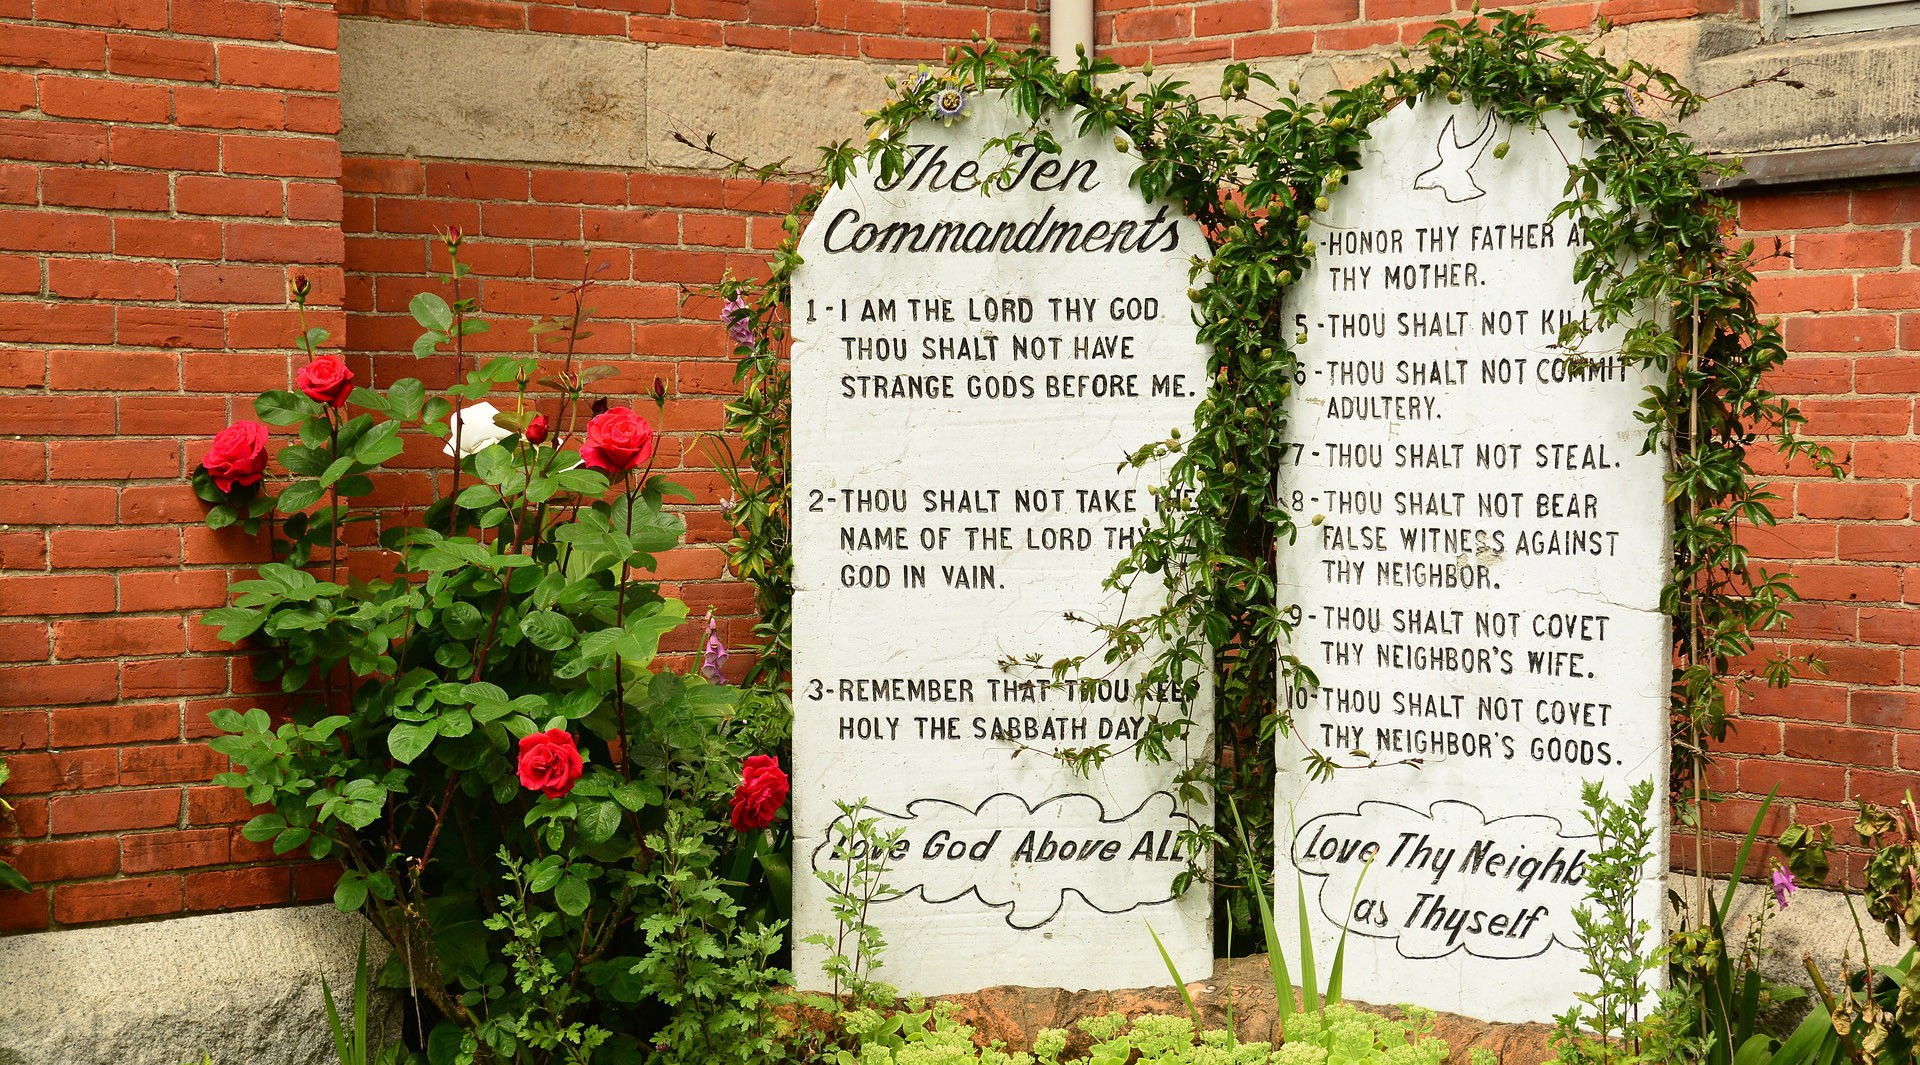 10 Commandments on tablets in a garden